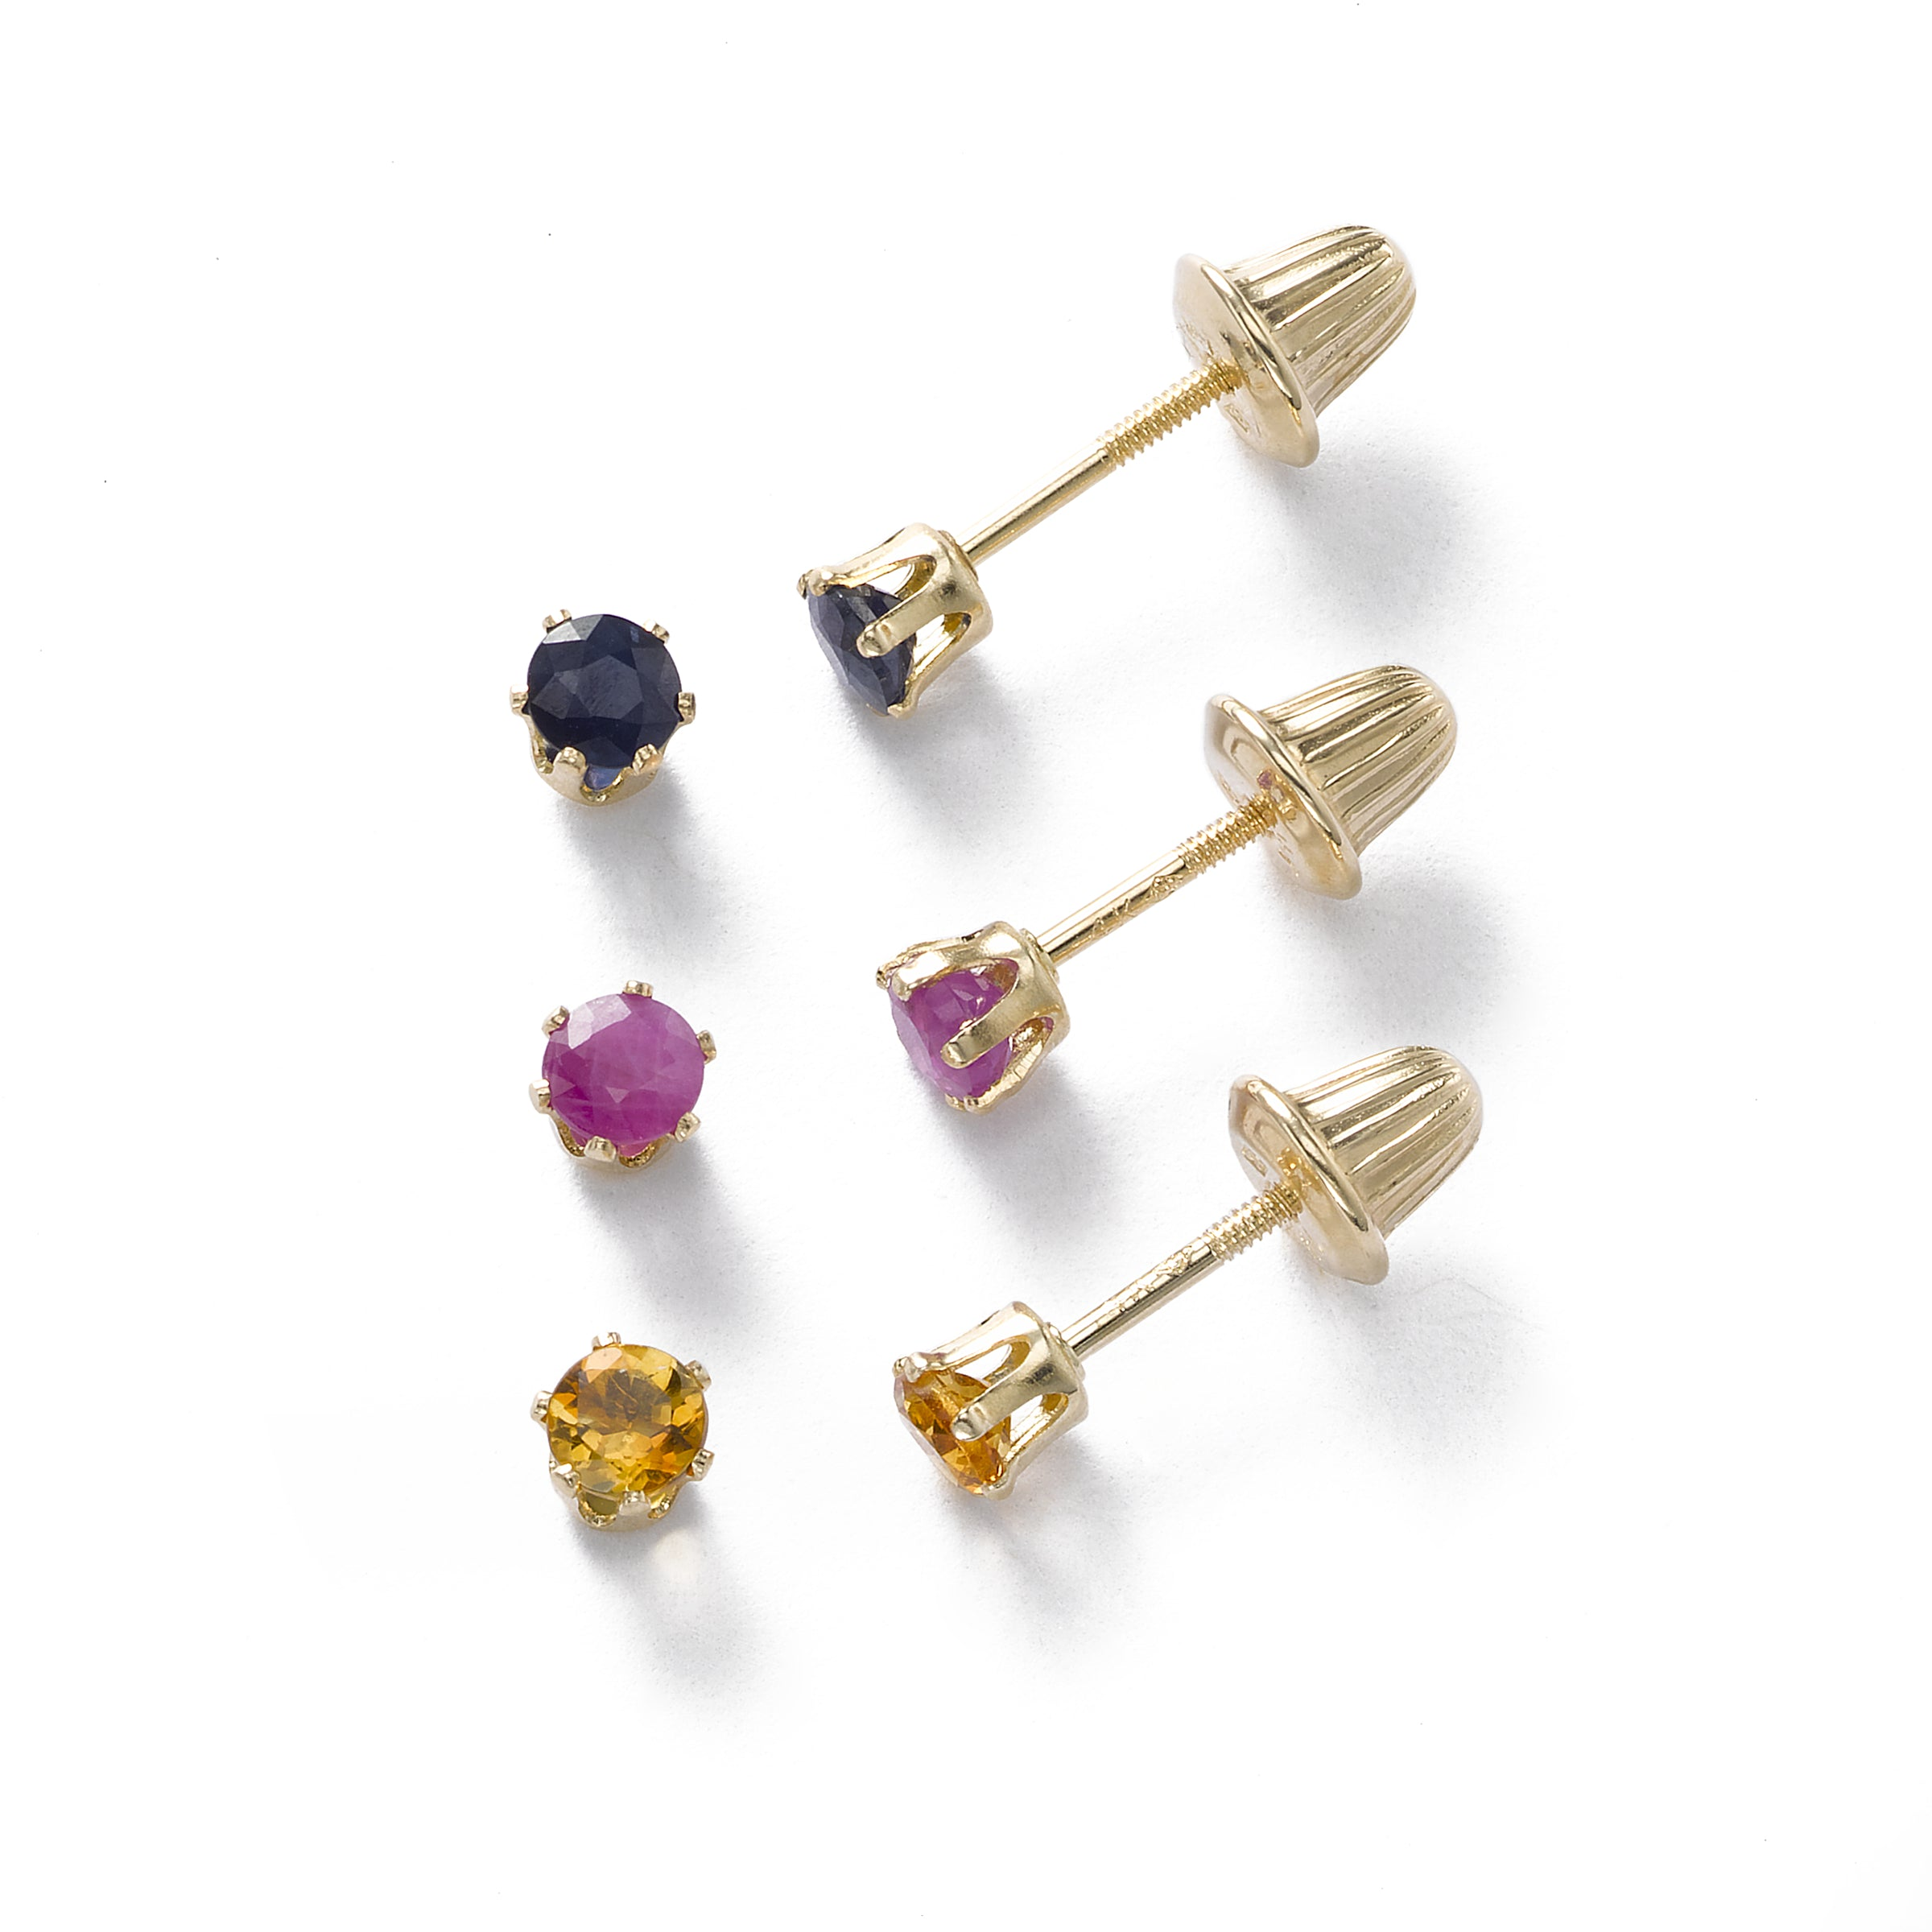 Baby Ruby July Birthstone Earring, 14K